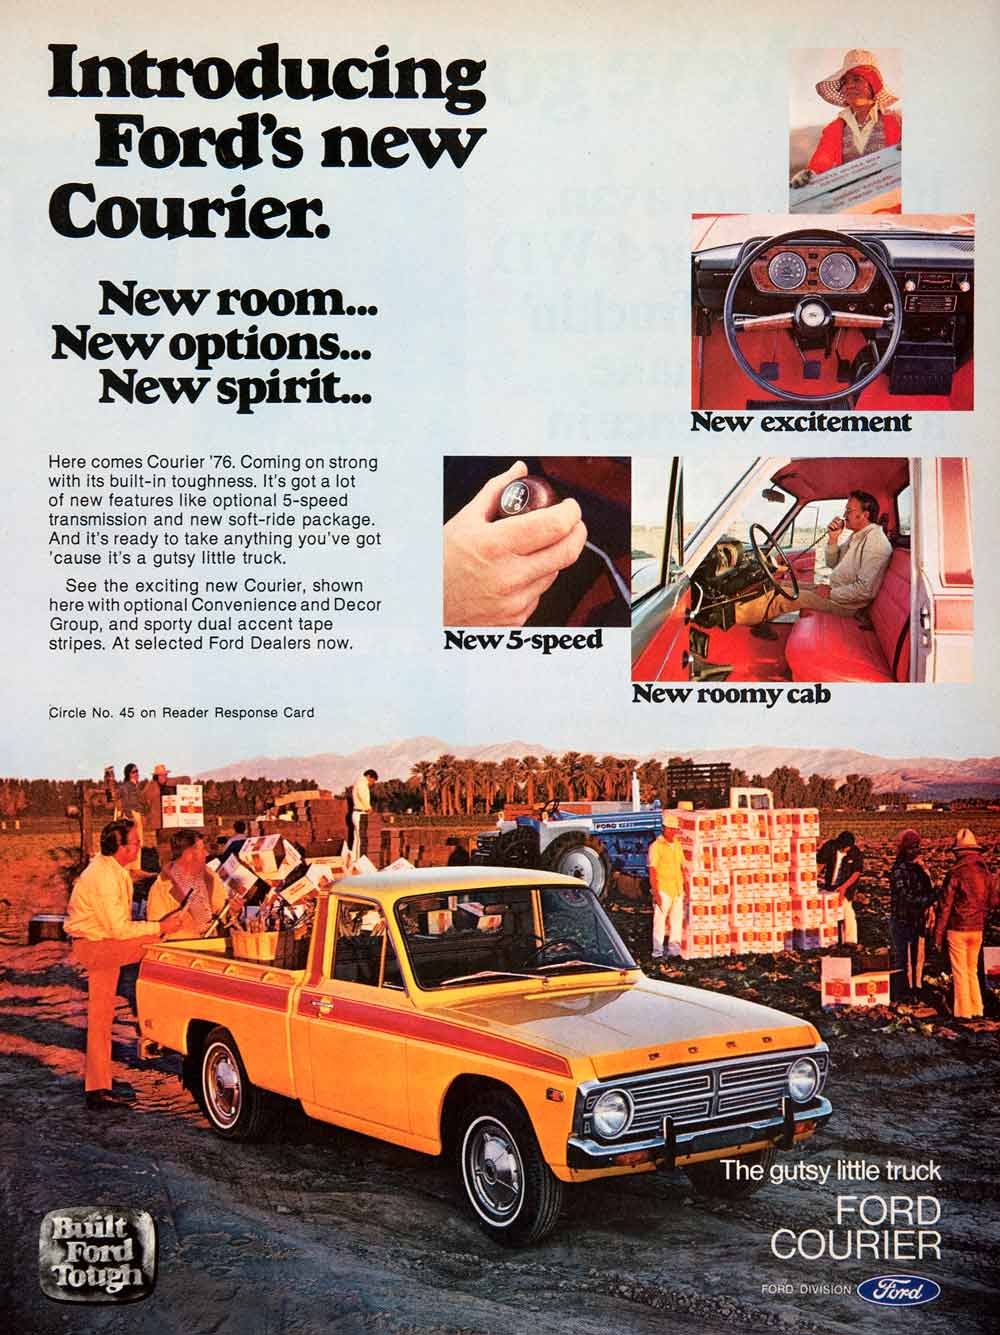 Products Tagged Sf4 Page 2 Period Paper 1976 Chevy Spirit Of 76 Truck Ad Ford Motor Courier Construction Automobile Vehicle Car Pickup